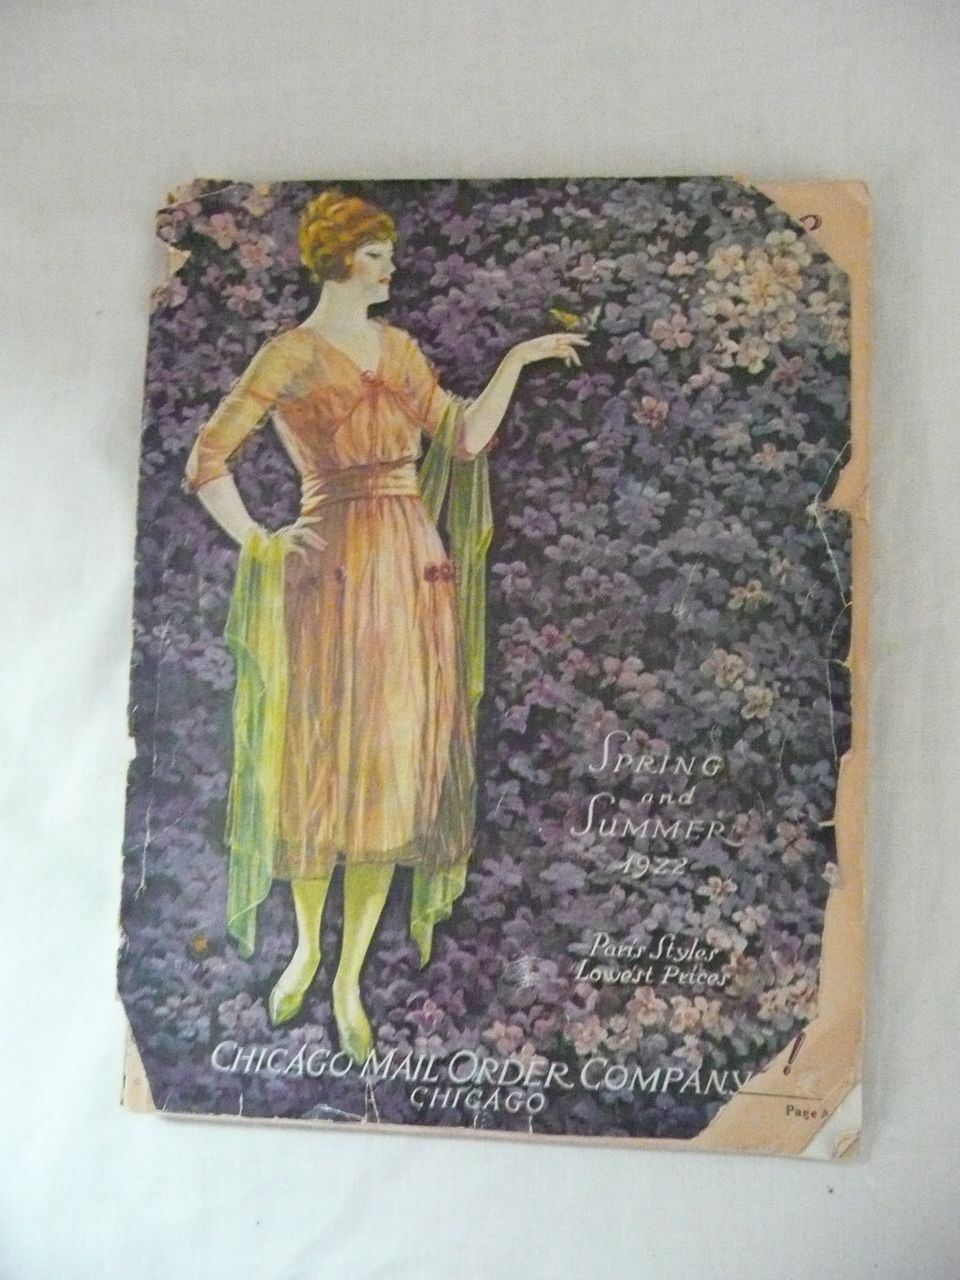 Chicago Mail Order Co - Spring & Summer 1922 Catalogue